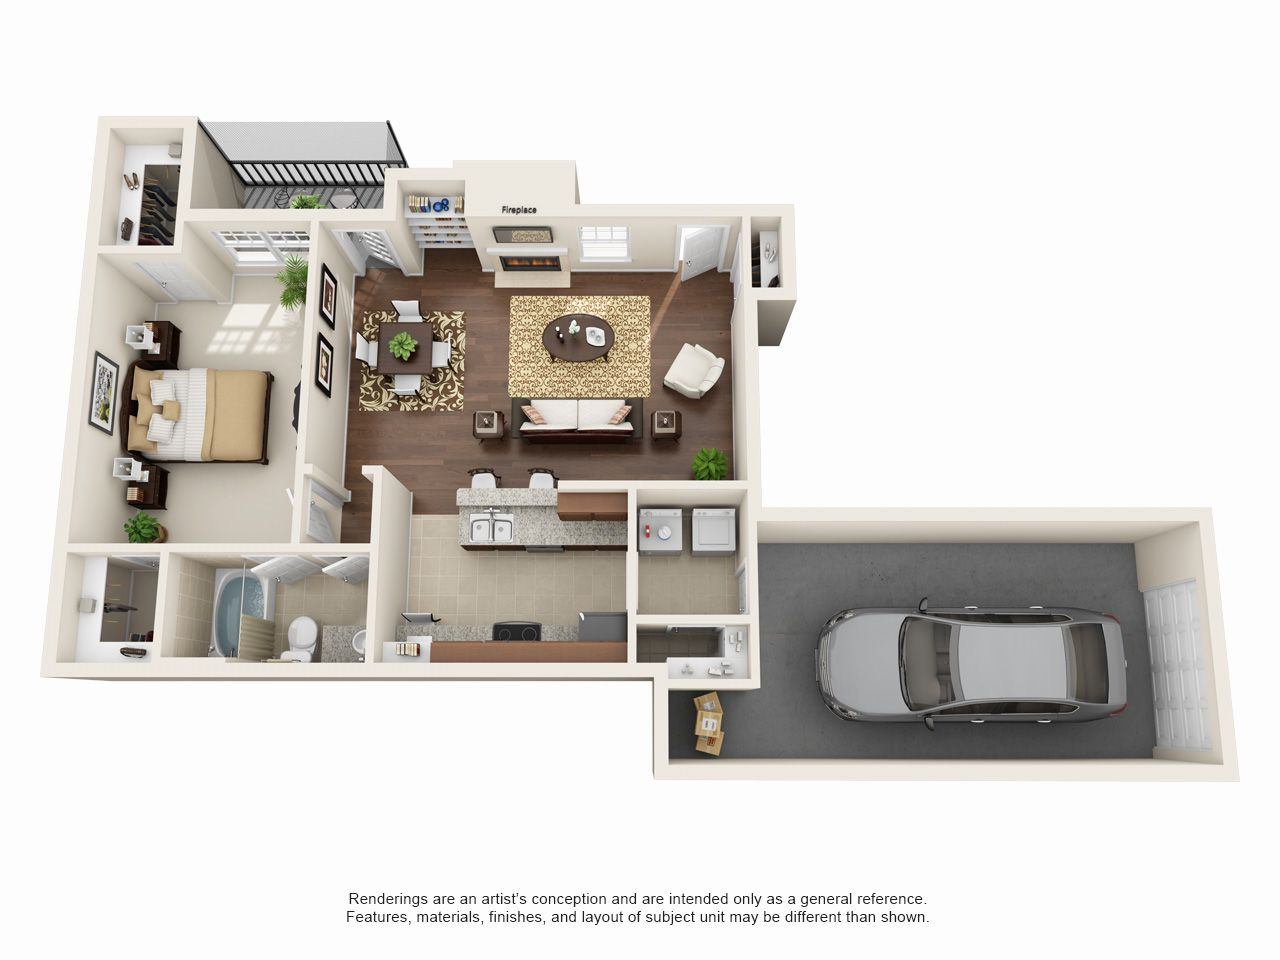 Luxury 1 2 3 And 4 Bedroom Apartments In Coppell Tx Coppell Texas Apartment Steadfast Apartment Layout Luxurious Bedrooms Bathroom Remodel Master